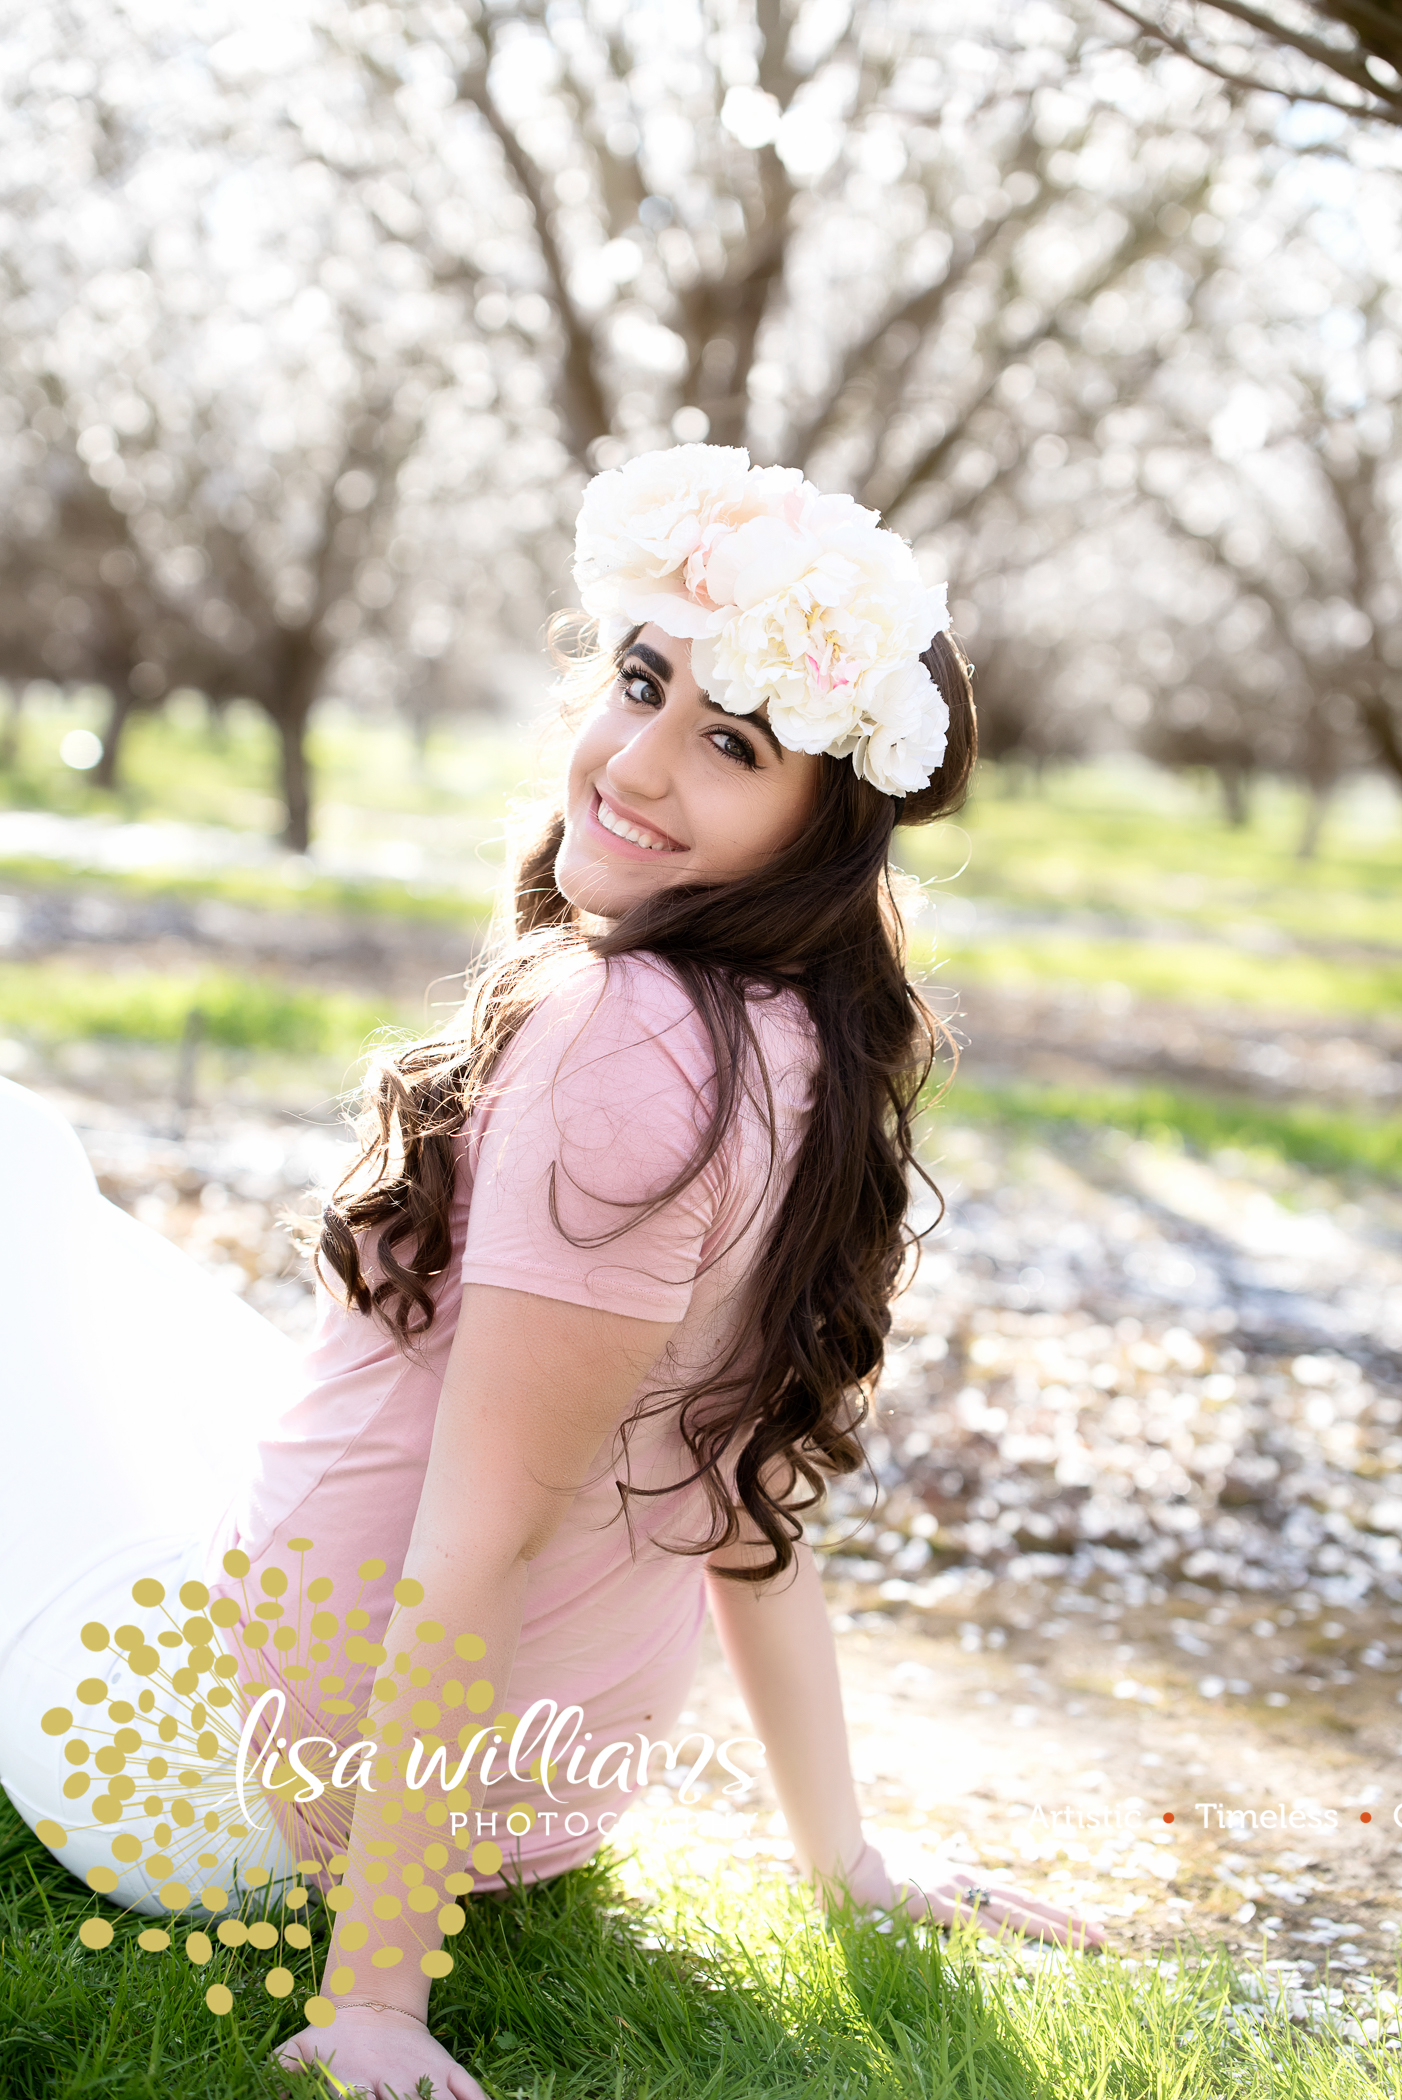 Lisa Williams photography – grass valley portrait photographer- senior portrait photographer- northern California senior portraits- Nevada county senior portraits – Colfax Senior Portraits – Rocklin Senior Portraits- Roseville Senior Portraits – t-16.jpg